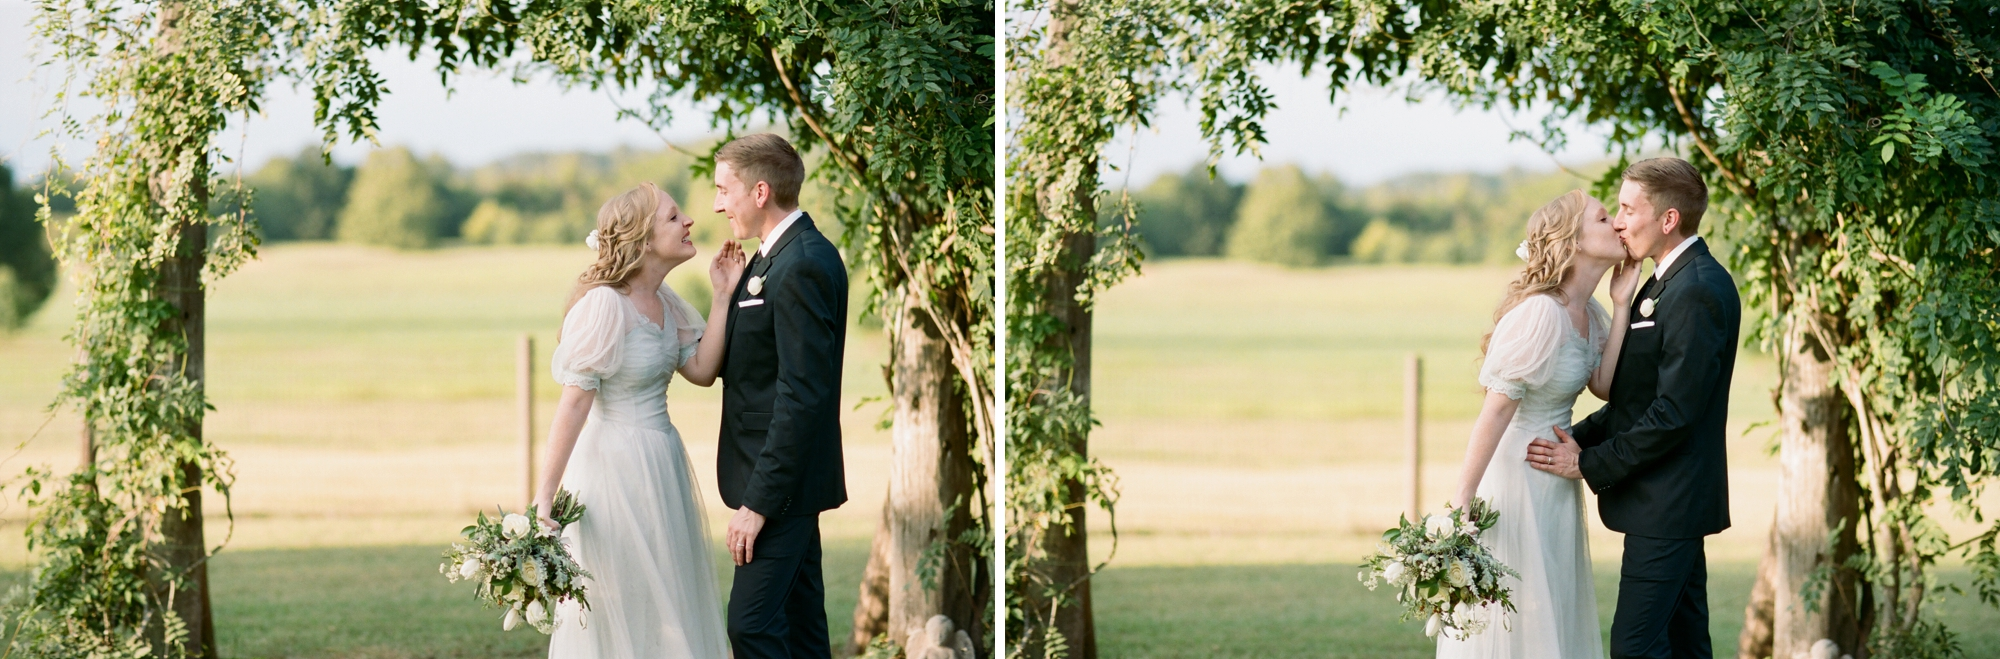 alabama-film-wedding-photographer_0021